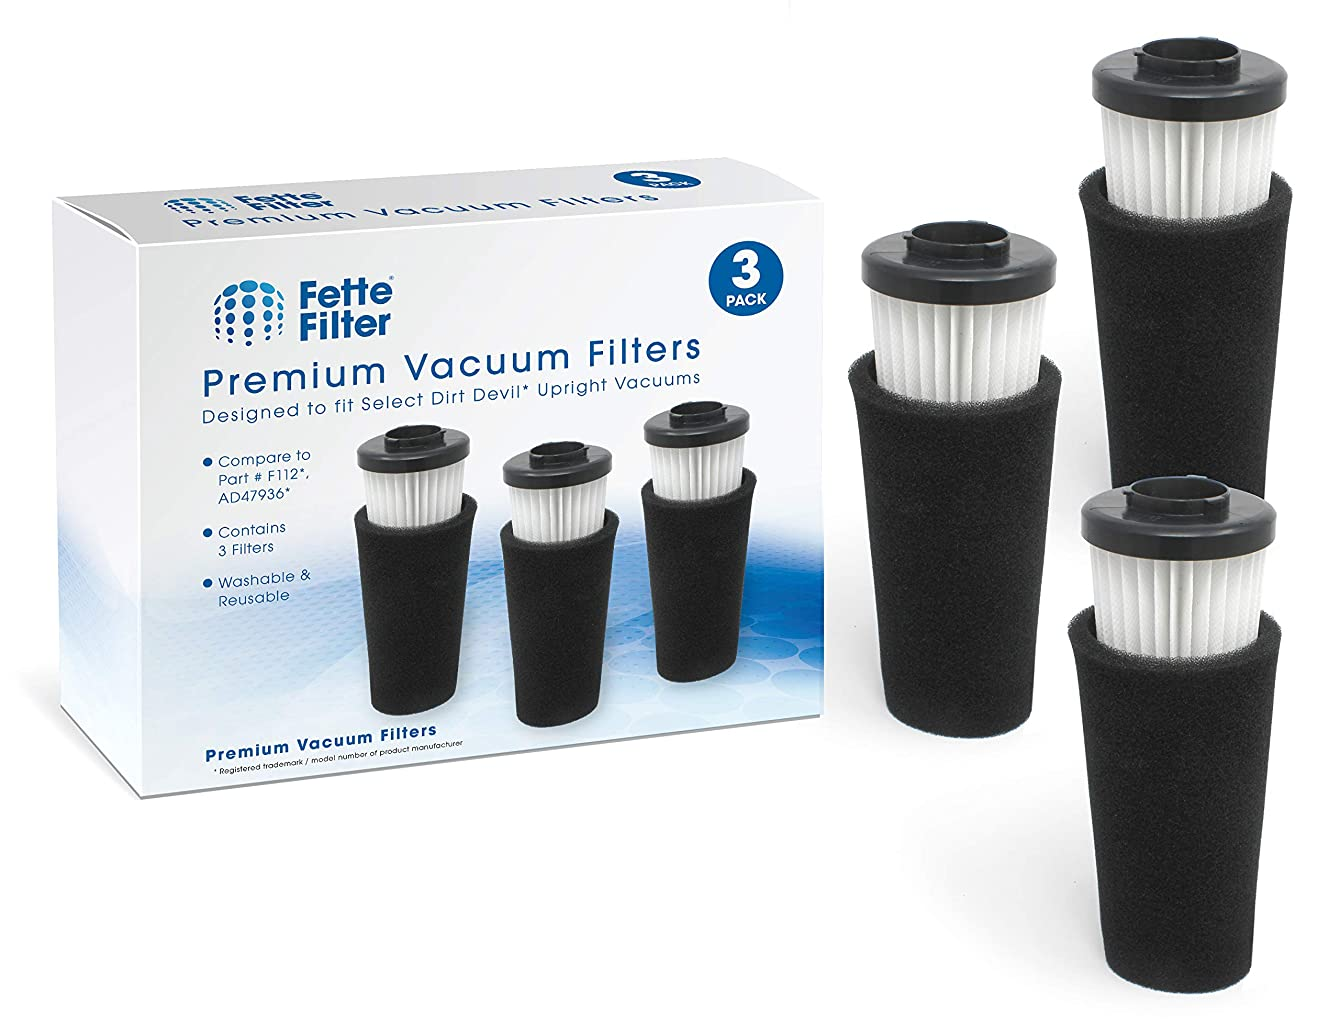 Fette Filter - Pre Motor Odor Trapping Filter Compatible with Dirt Devil Endura. Compare to Part F112. Pack of 3.